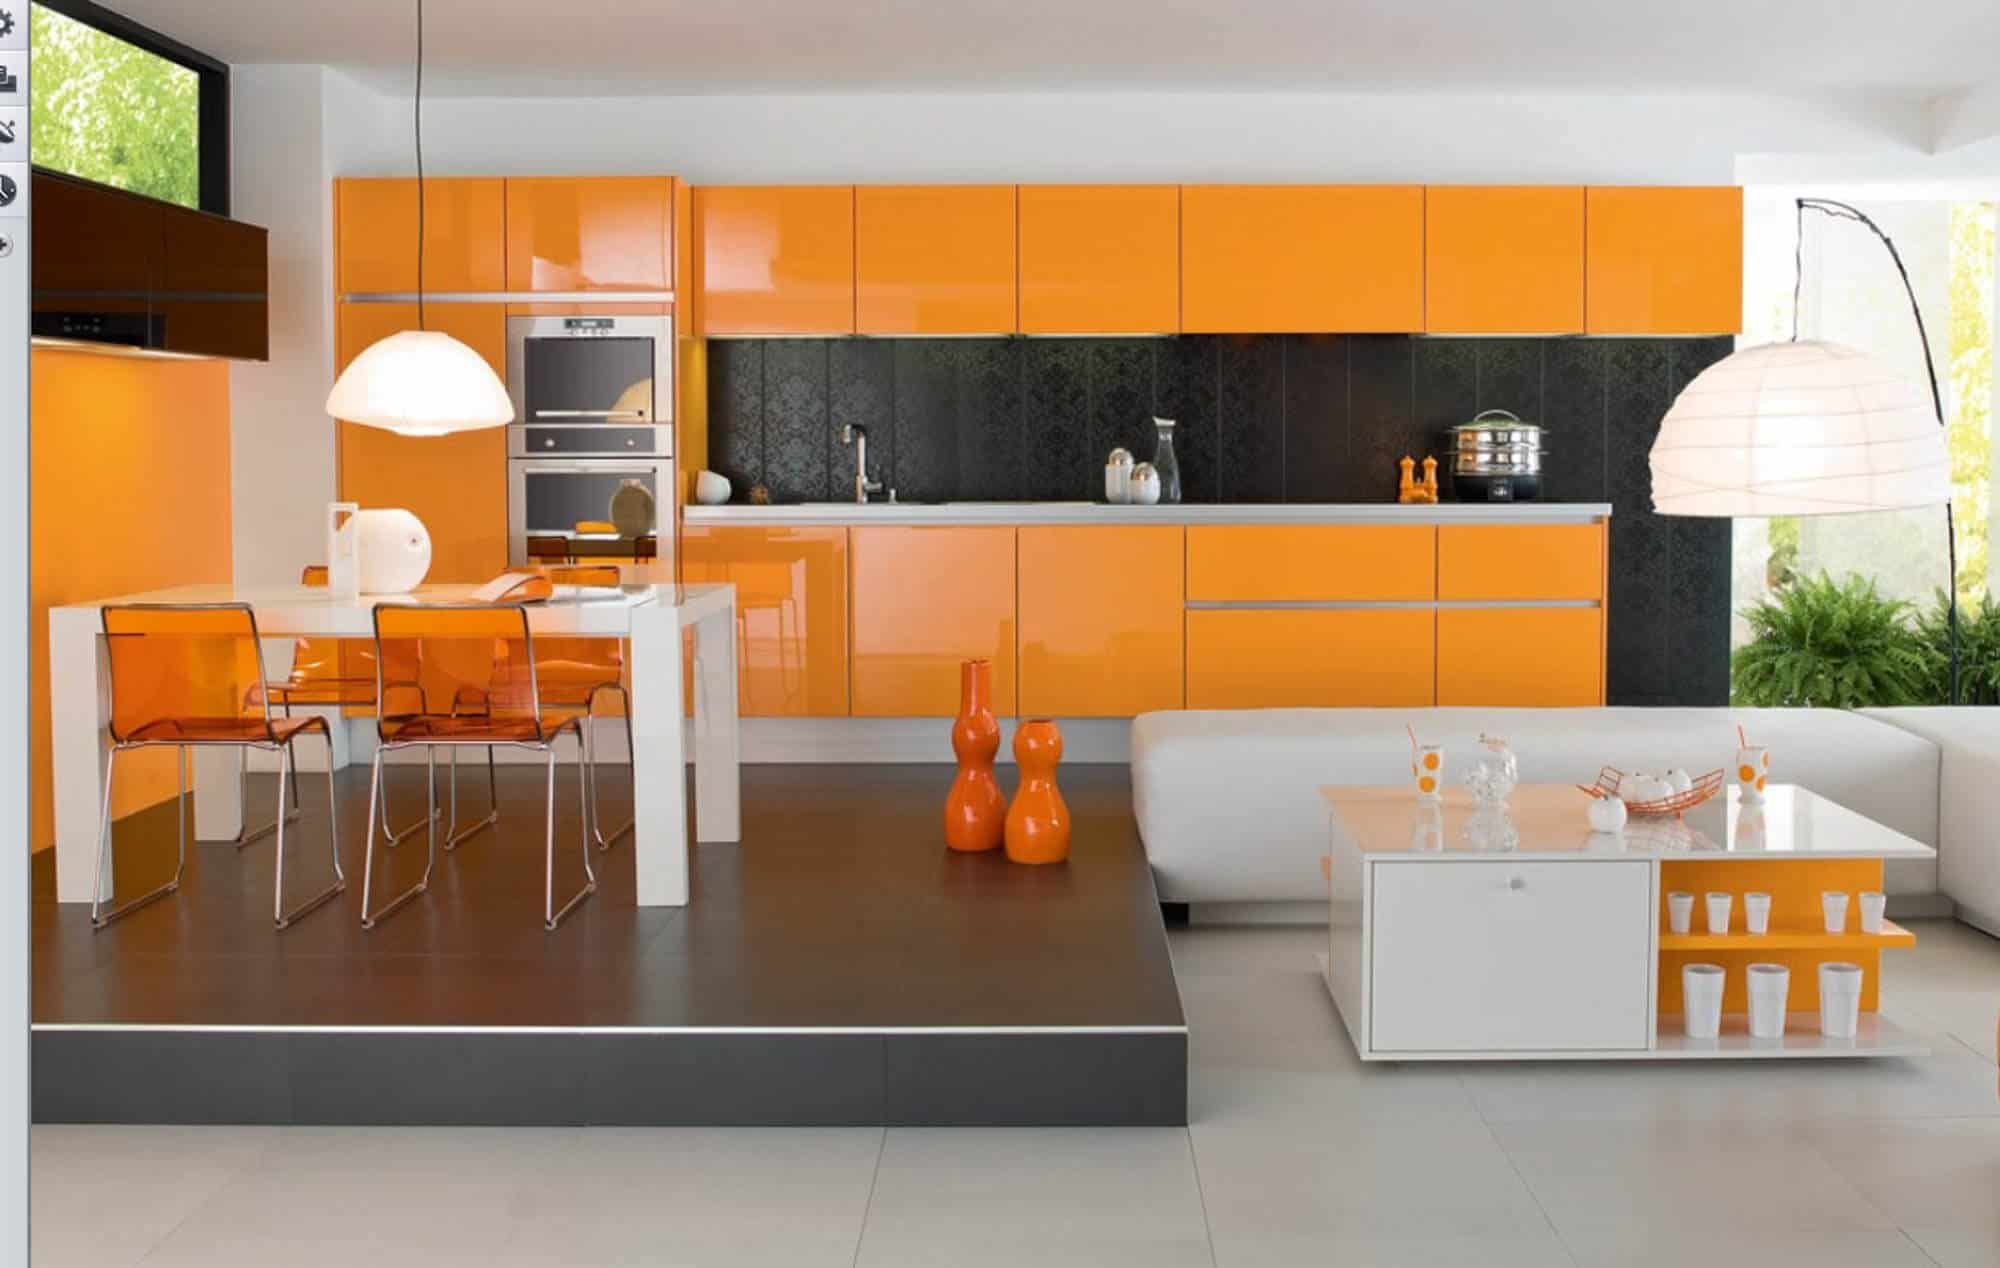 Bright And Clean Kitchens Can Act As A Focal Point In An Open Concept Space